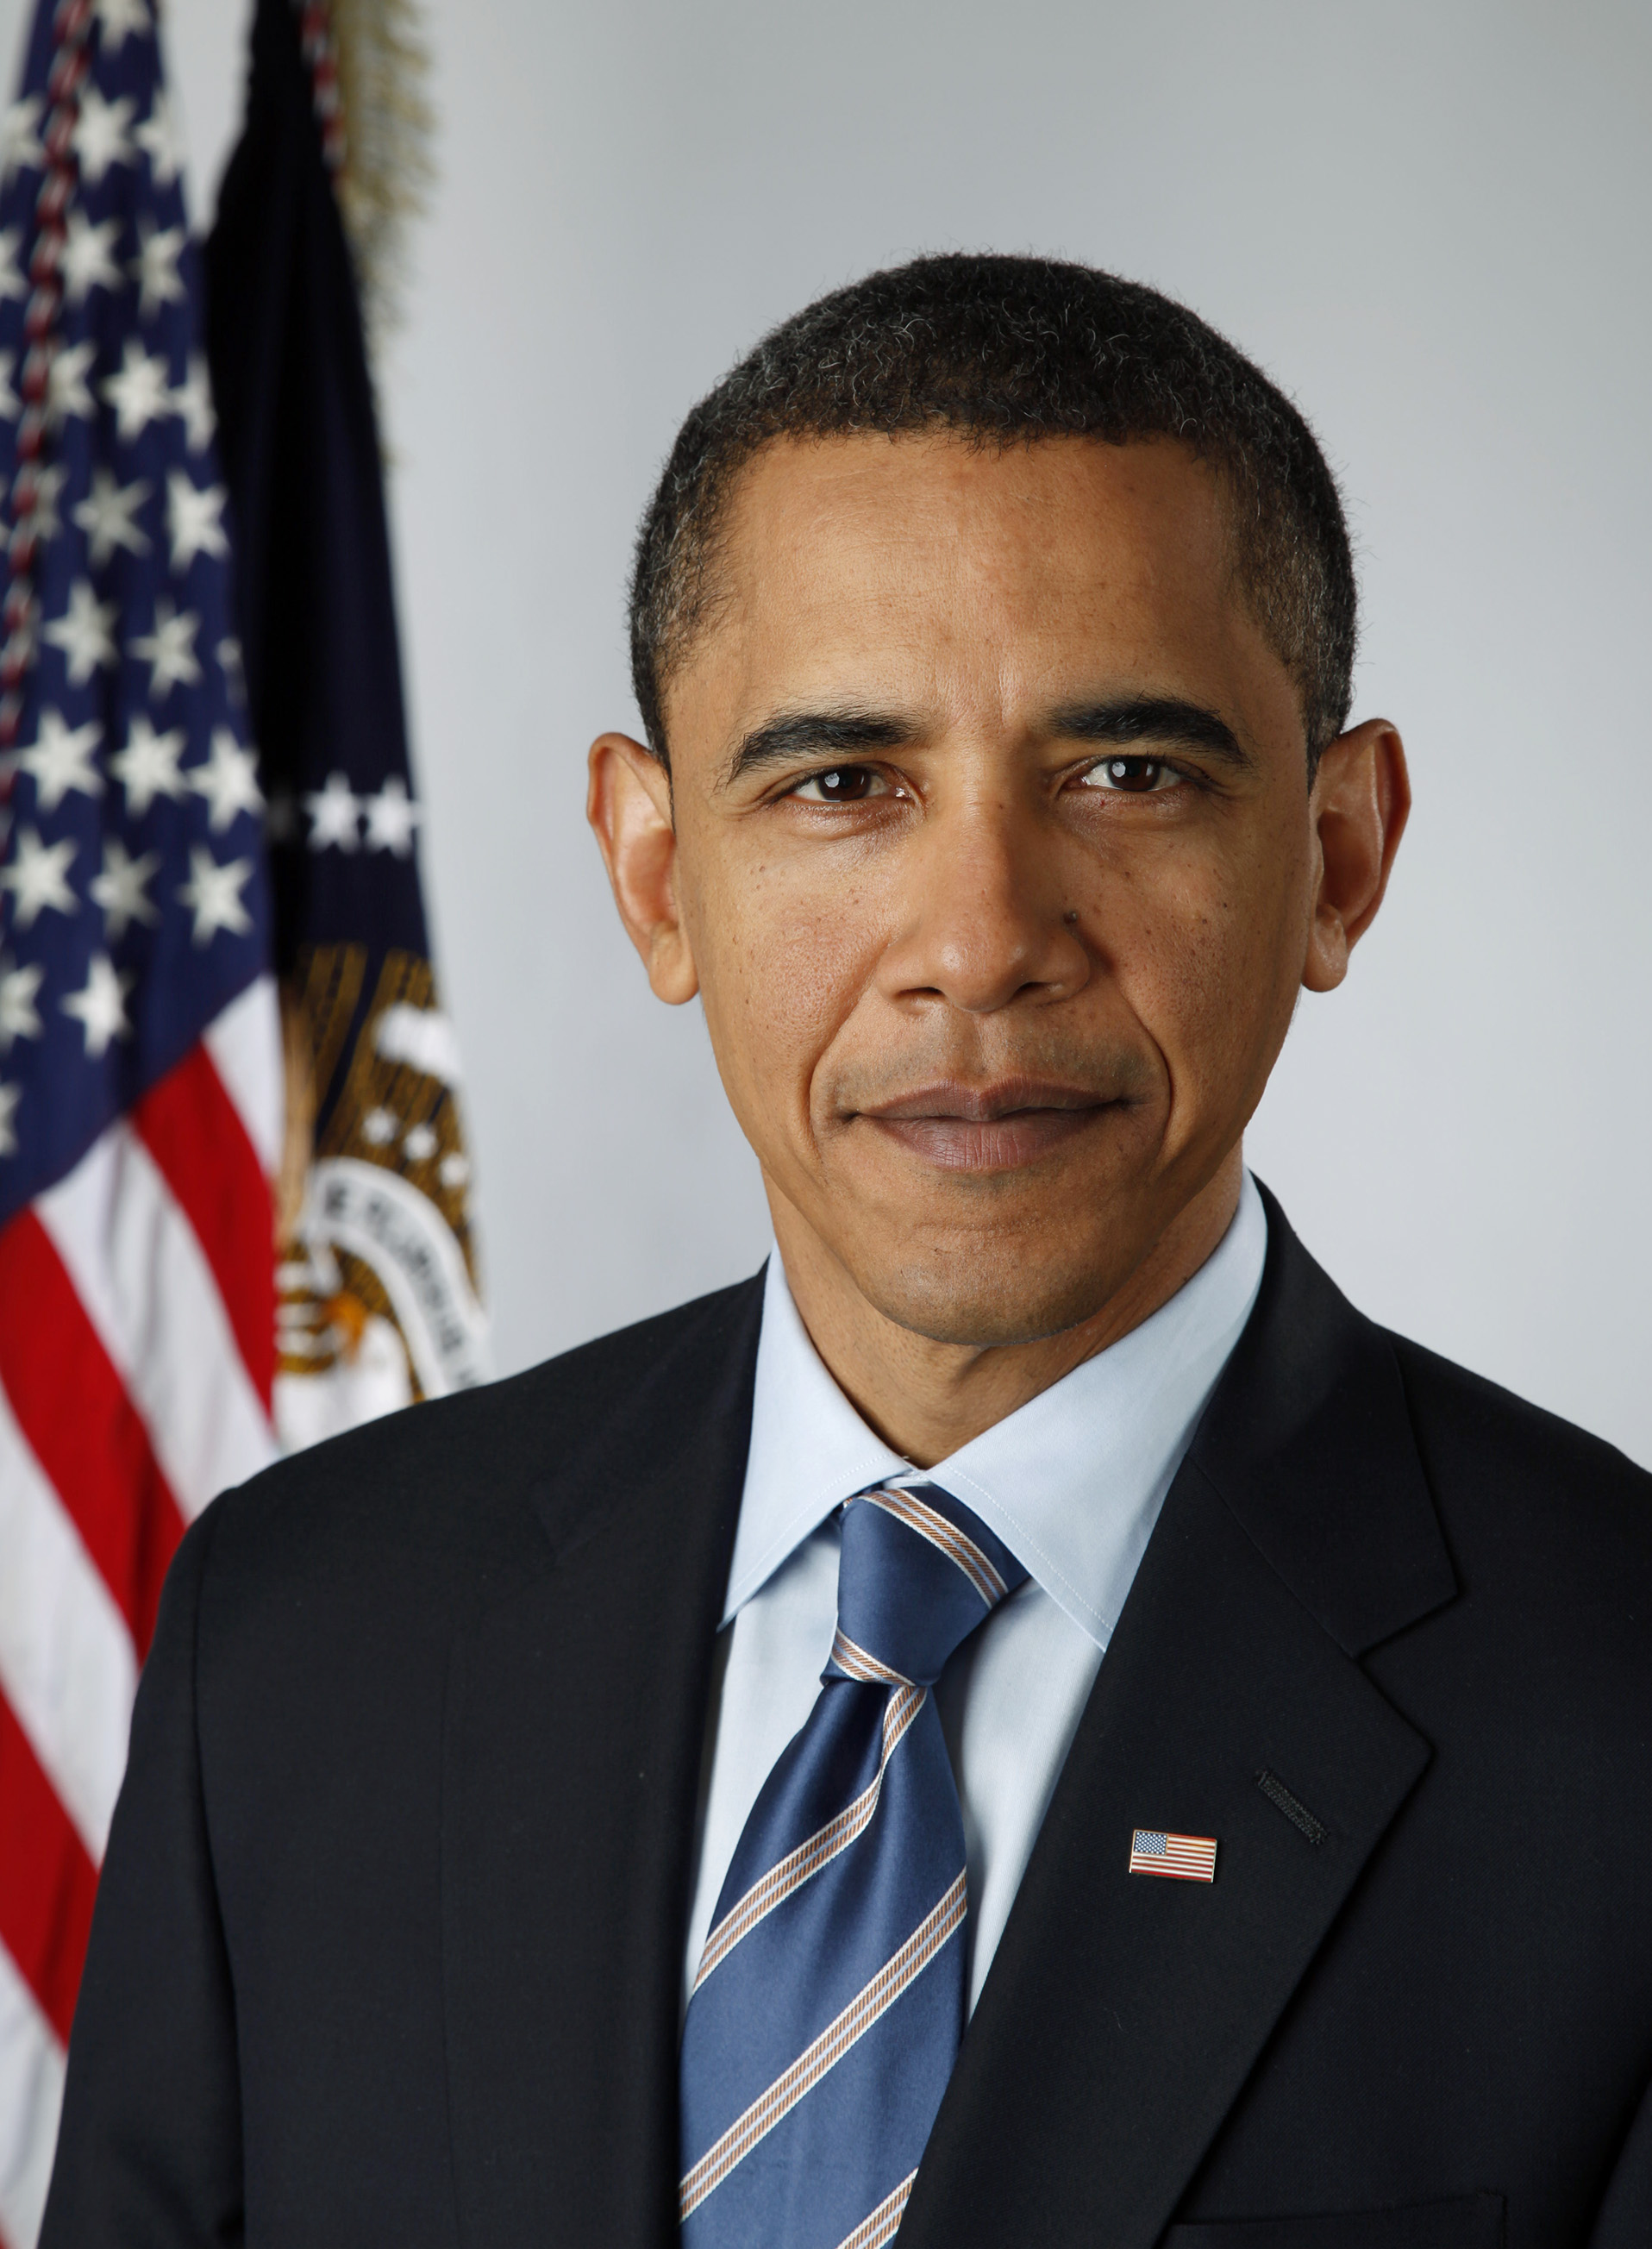 Description official portrait of barack obama